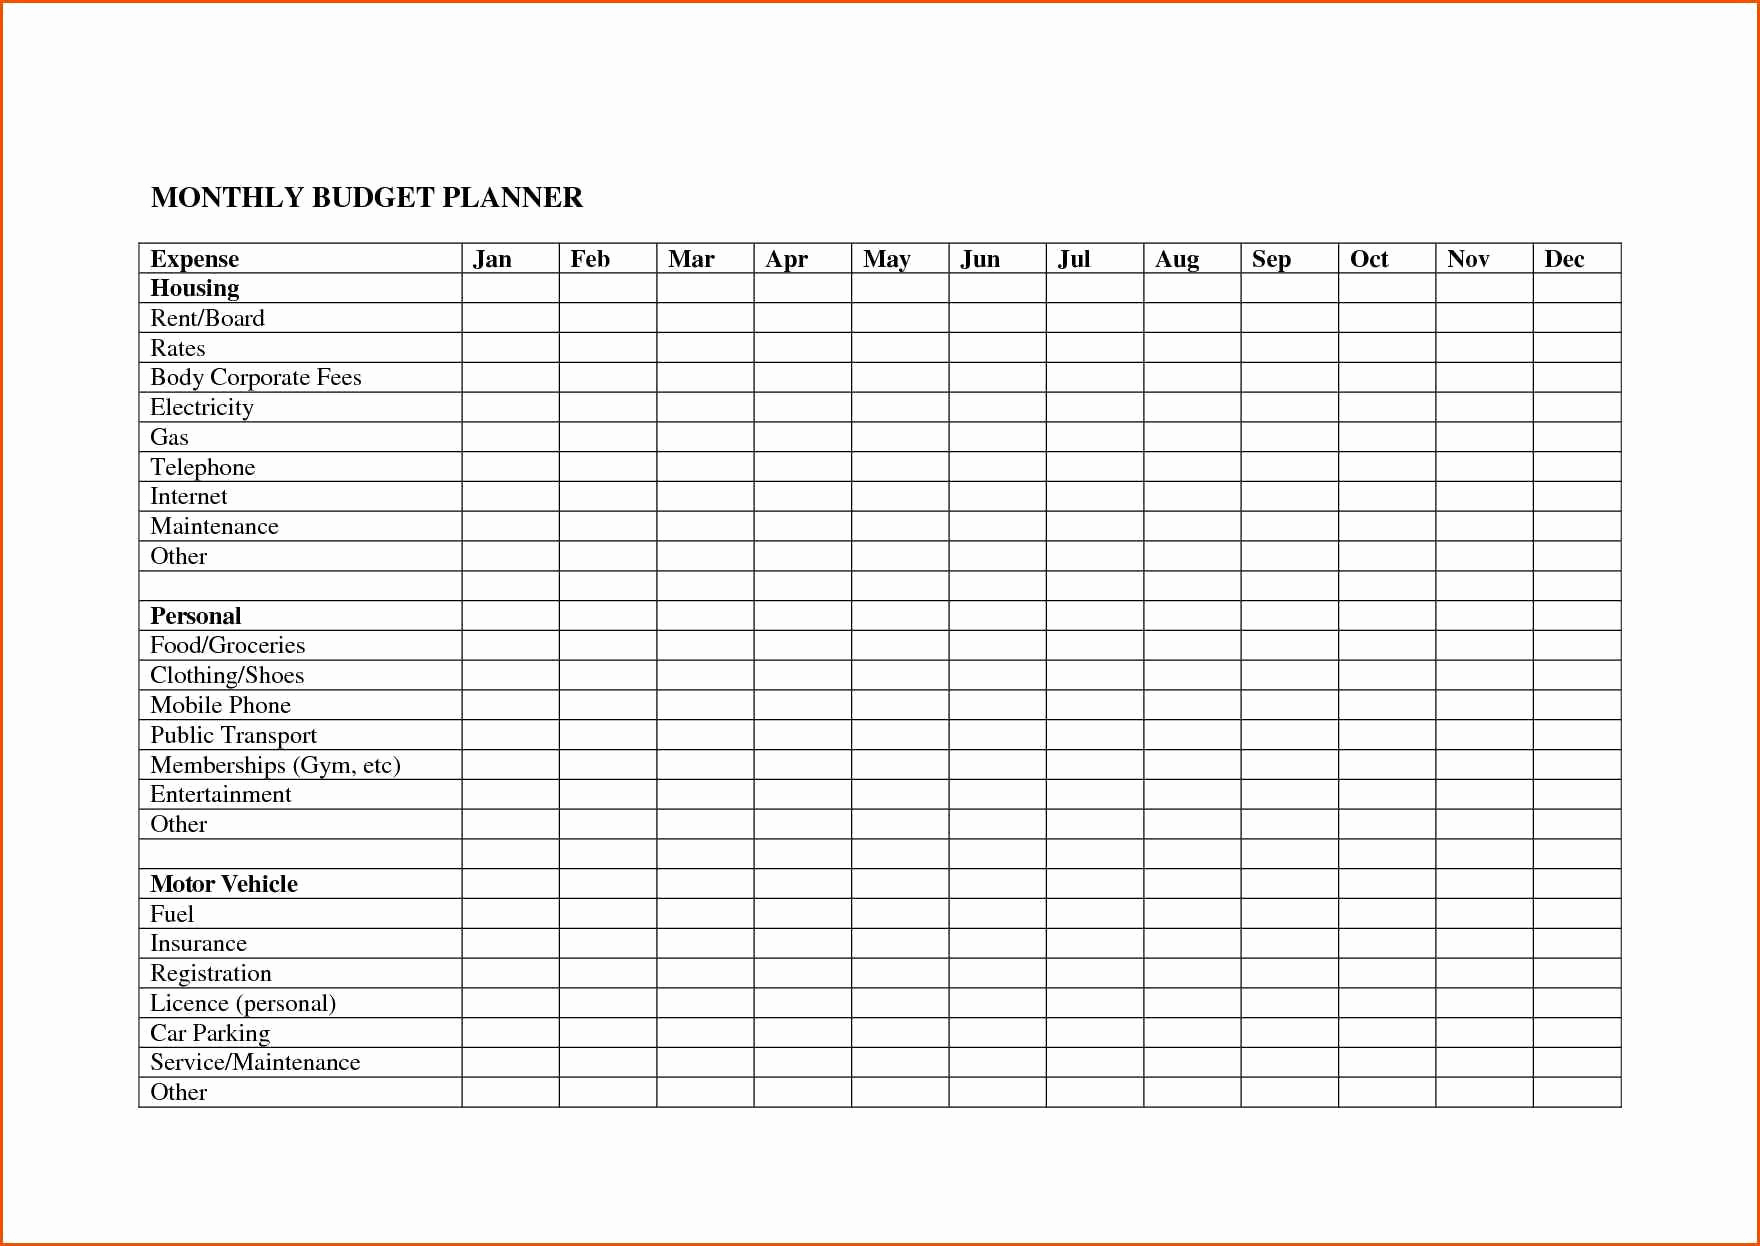 Monthly Bills Spreadsheet Personal Budget Free Download For with regard to Free Printable Monthly Bill Organizer Template